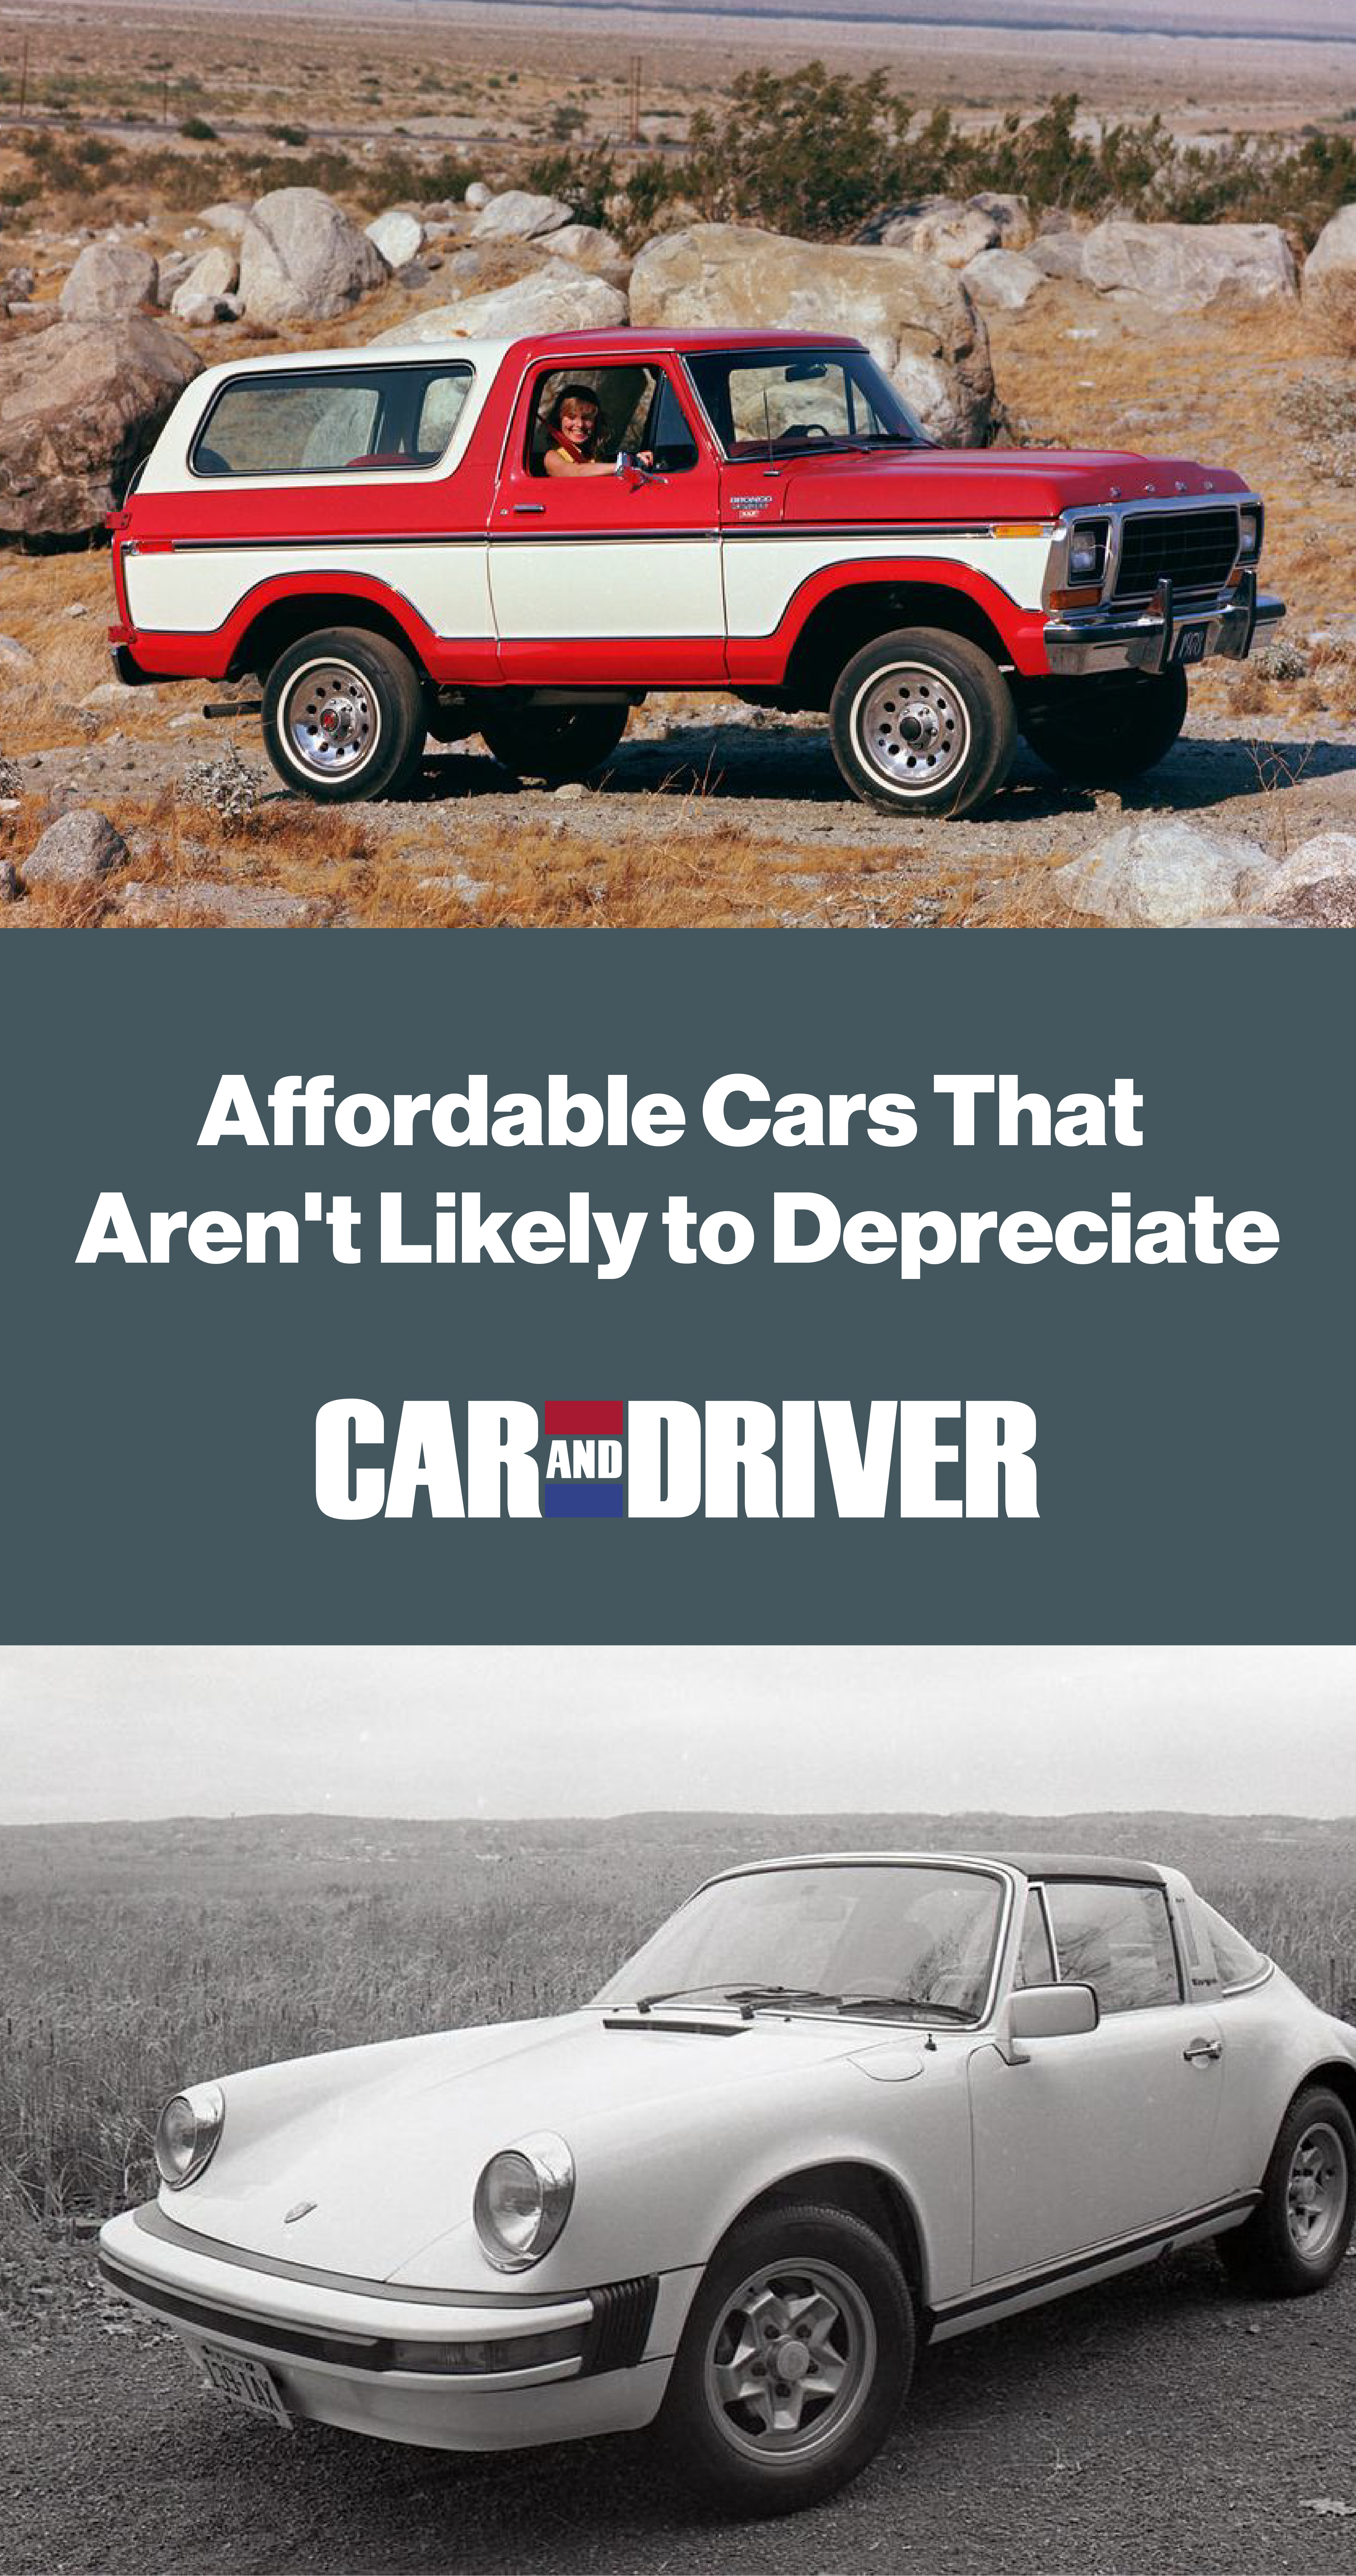 15 Fun, Affordable Cars That Aren't Likely to Depreciate